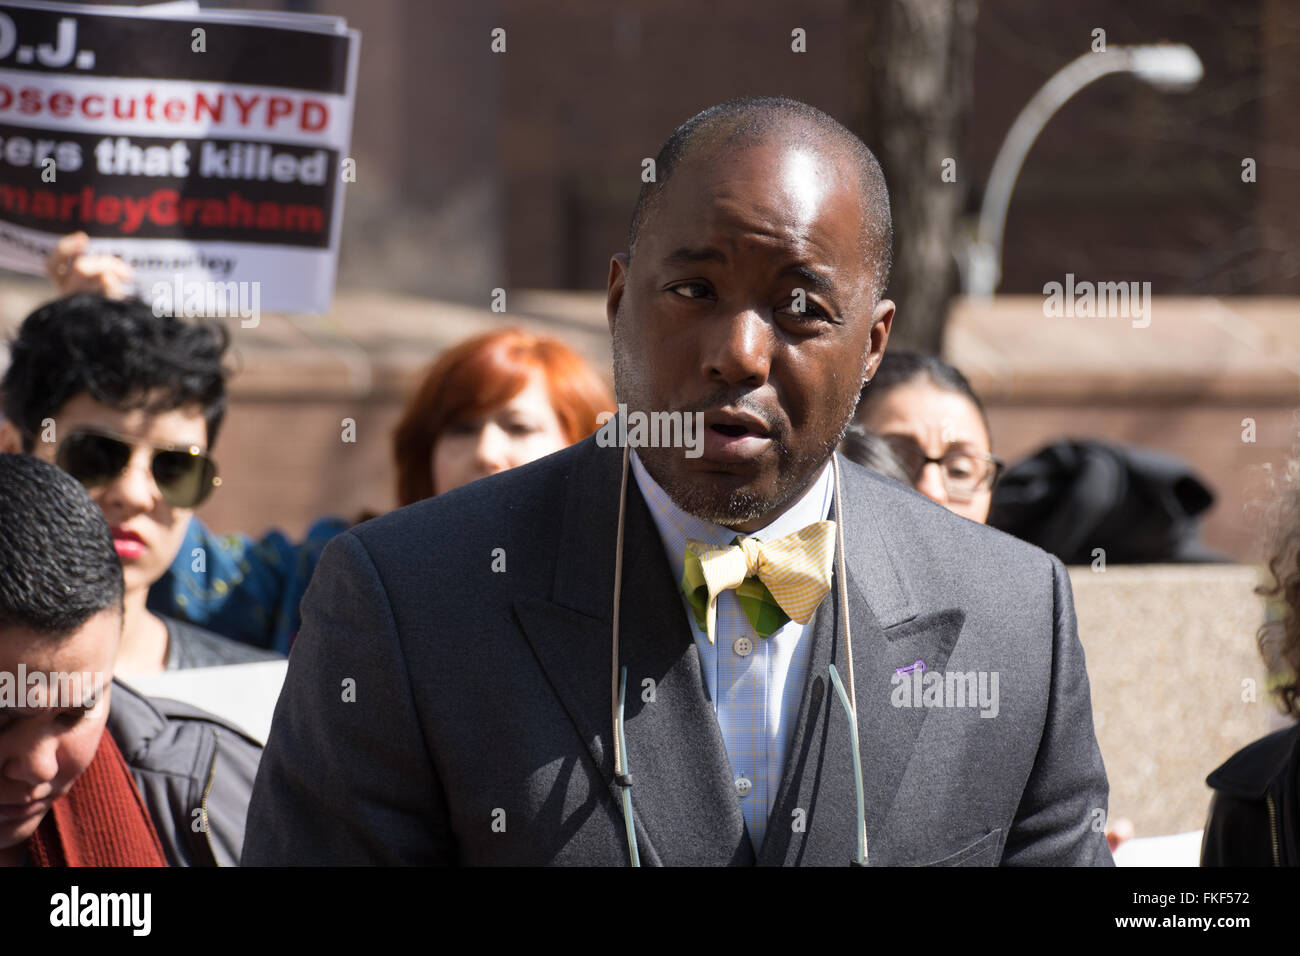 8th March 2016. New York, NY. Royce Russell, attorney for the family of Ramarley Graham, killed by a NYPD offiicer - Stock Image